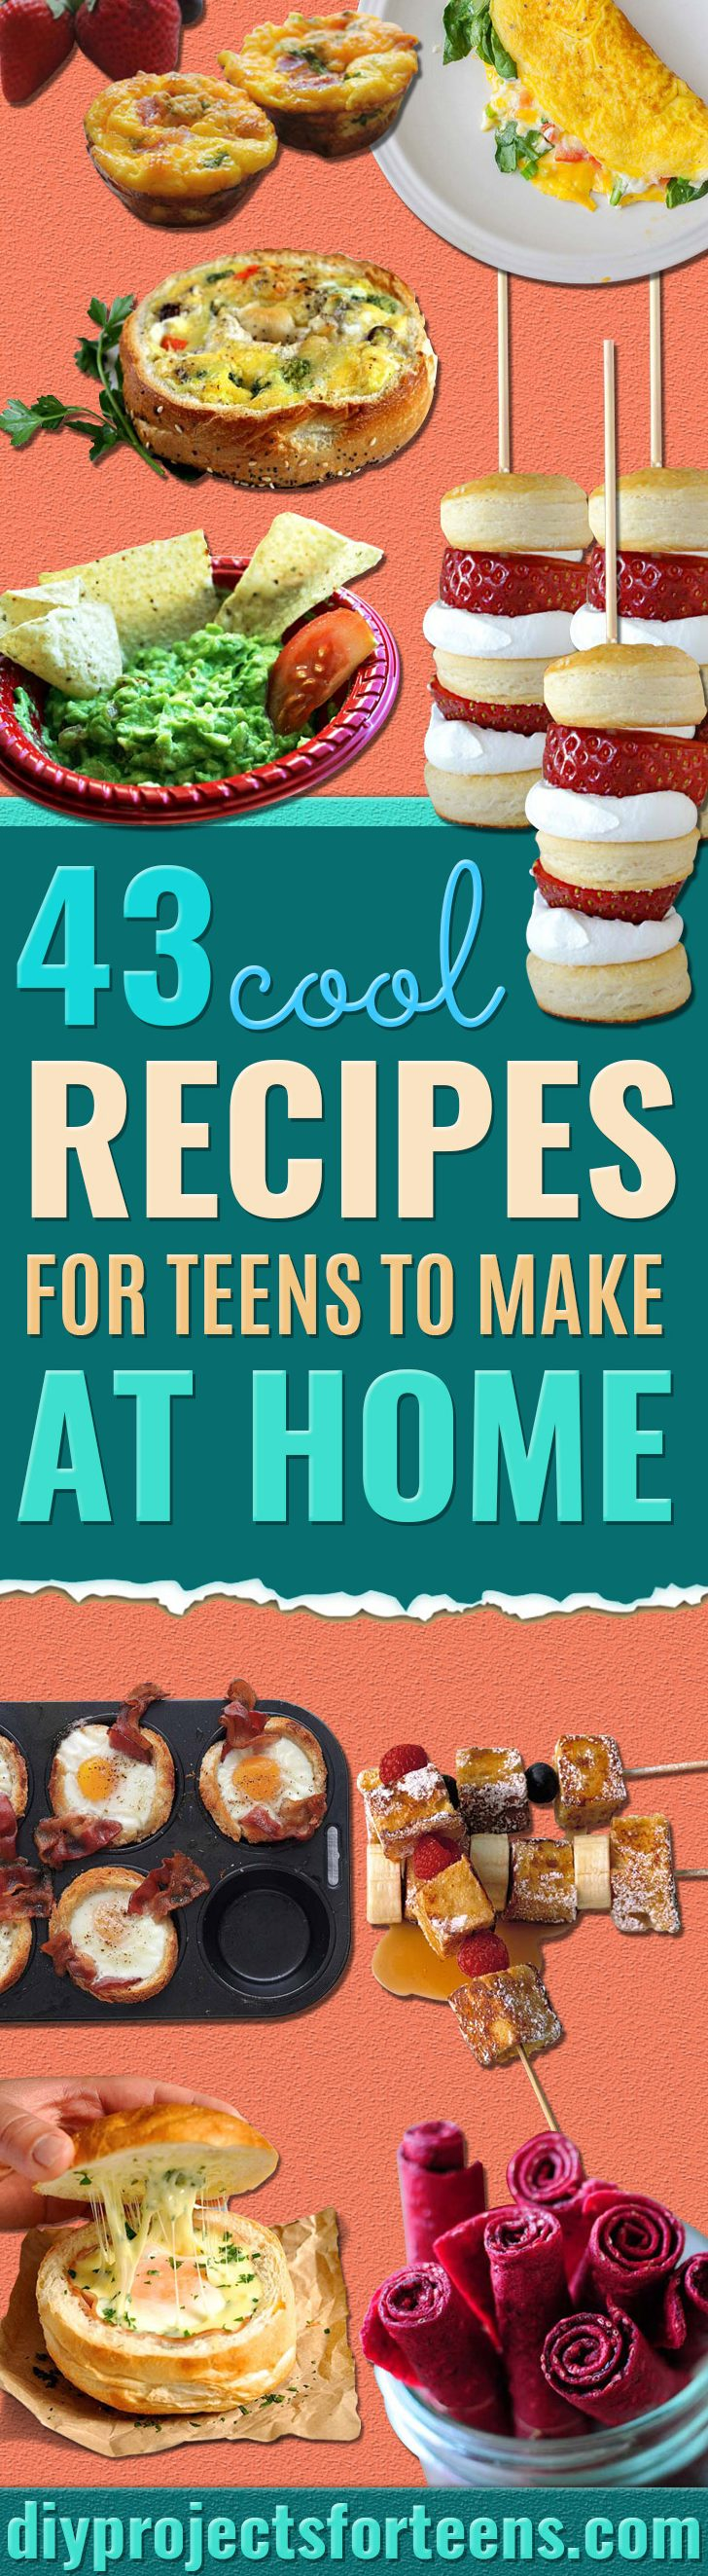 Cool and Easy Recipes For Teens to Make at Home - Fun Snacks, Simple Breakfasts, Lunch Ideas, Dinner and Dessert Recipe Tutorials - Teenagers Love These Fun Foods that Are Quick, Healthy and Delicious Ideas for Meals